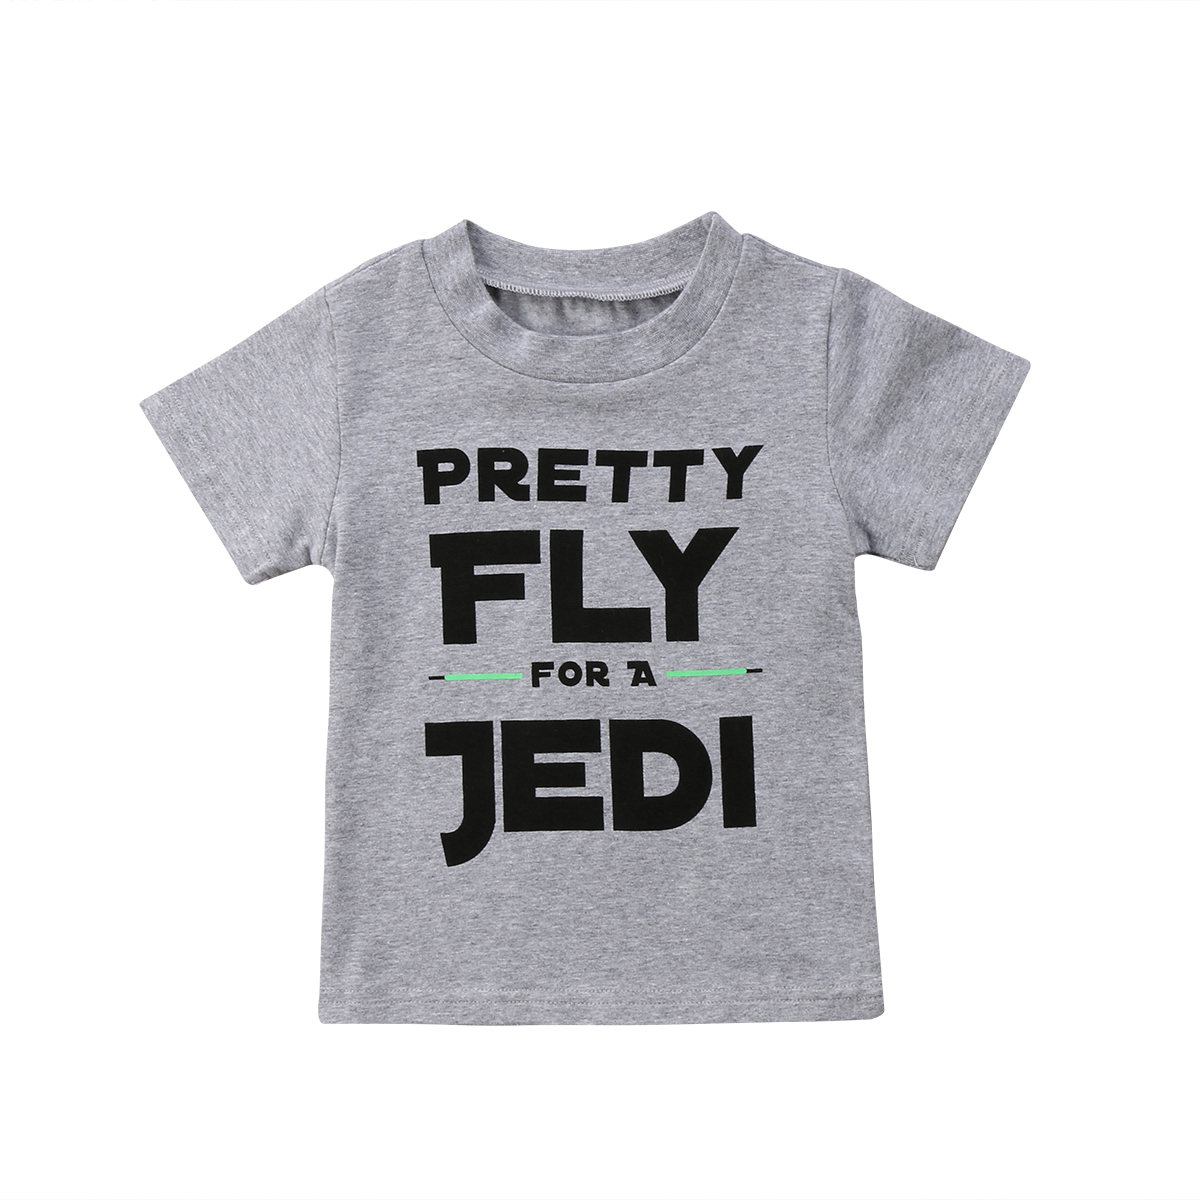 Cute Kid Baby Boys Cotton Short Sleeve Star Wars Tops T-shirt Tee Shirts Clothes